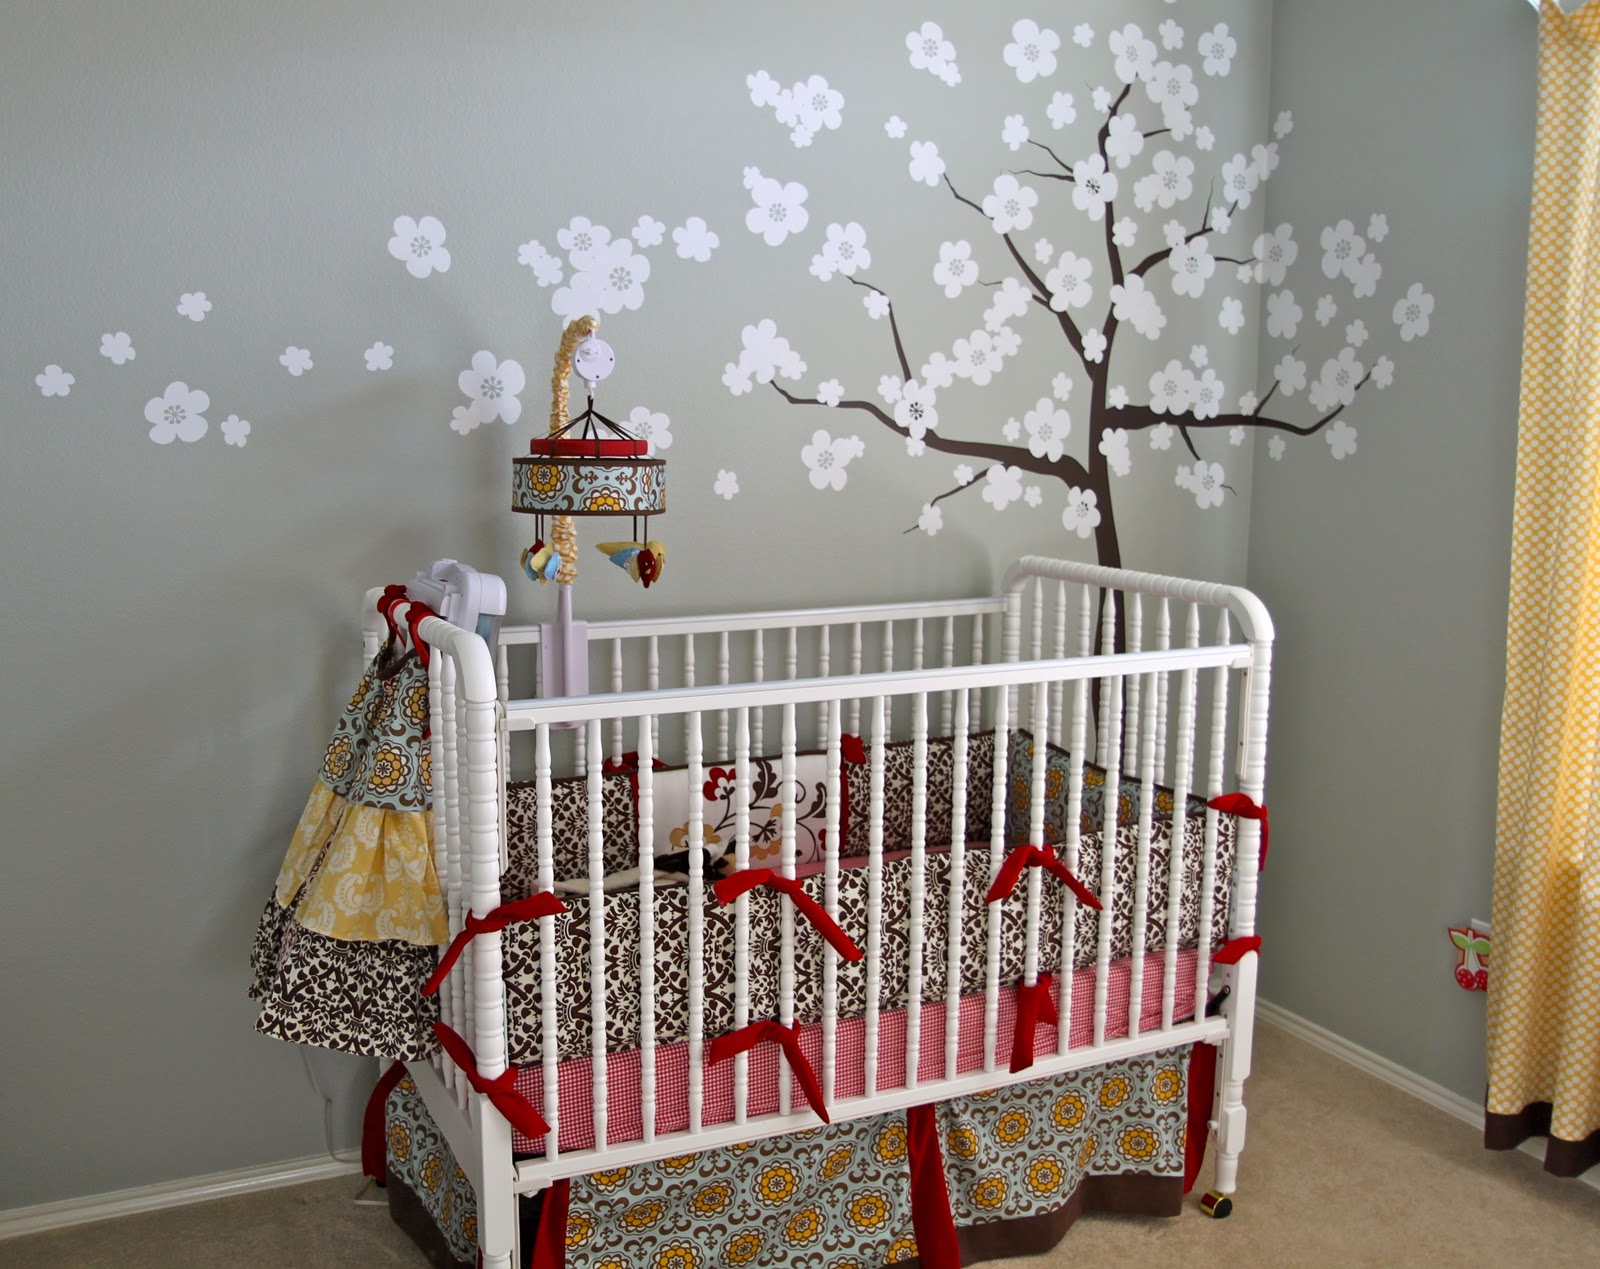 Baby nursery it 39 s quirky and so cute design dazzle for Baby room wall decoration